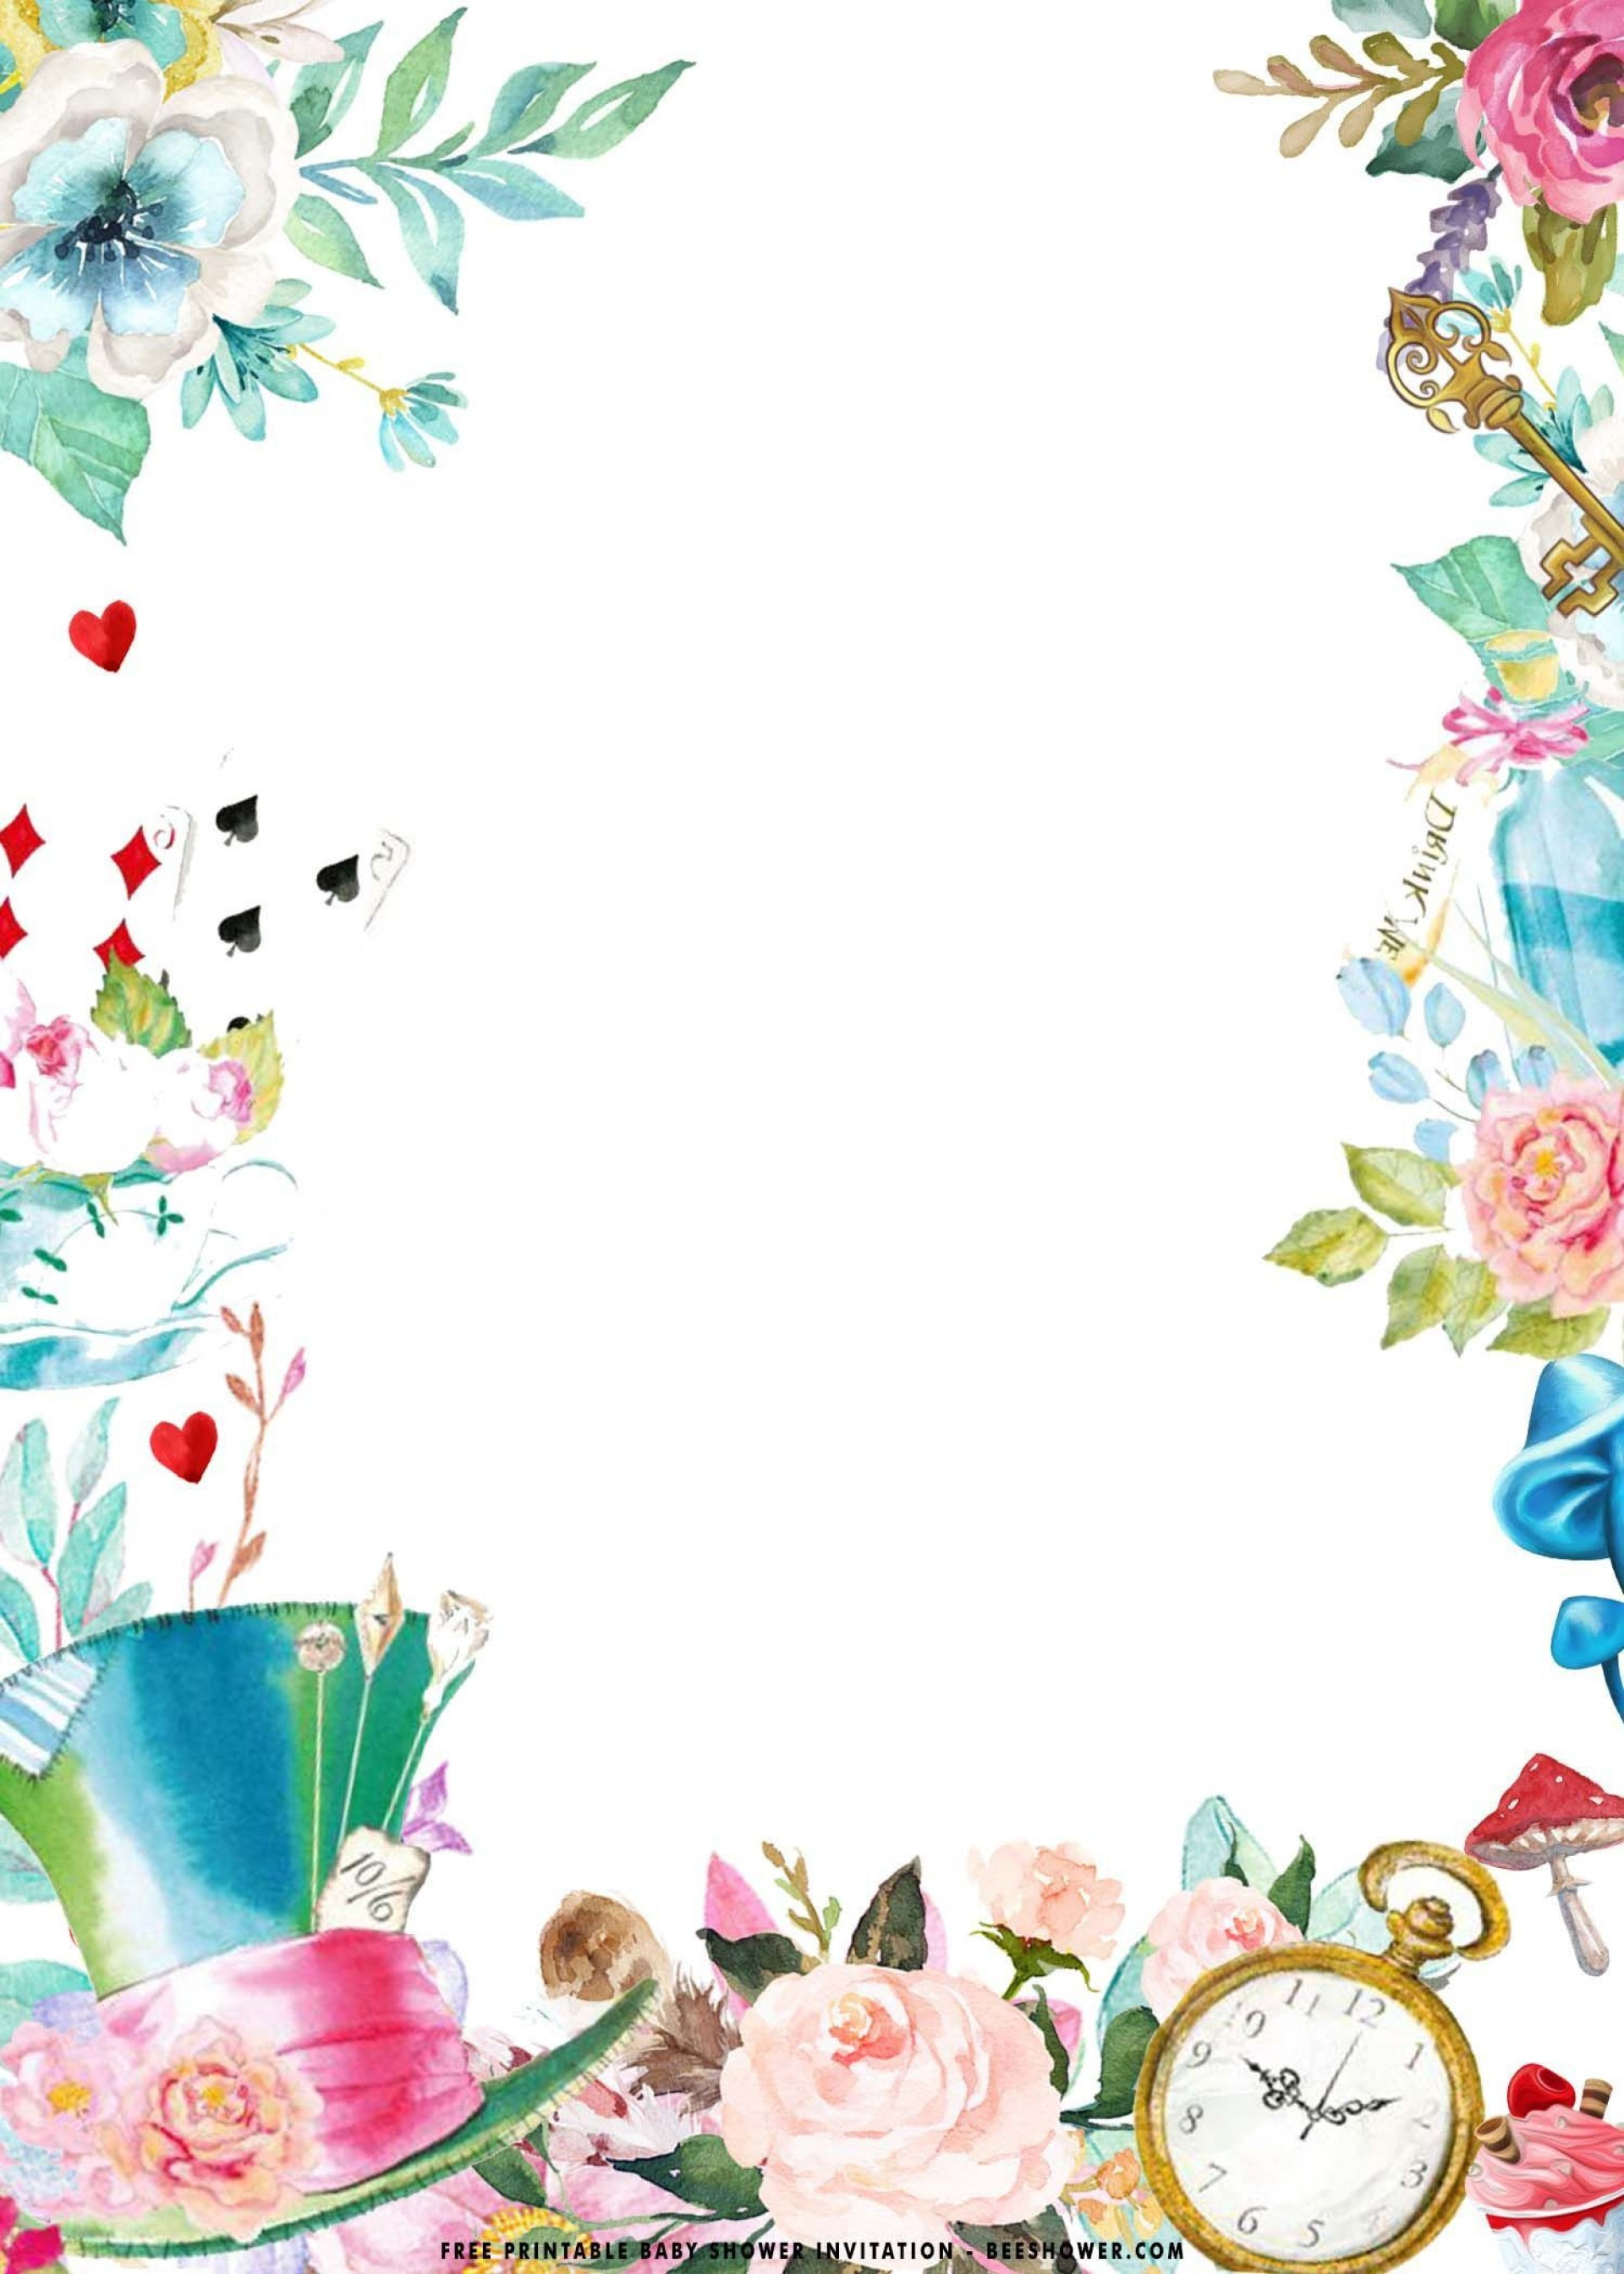 002 Formidable Alice In Wonderland Invitation Template Download Concept  Free1920